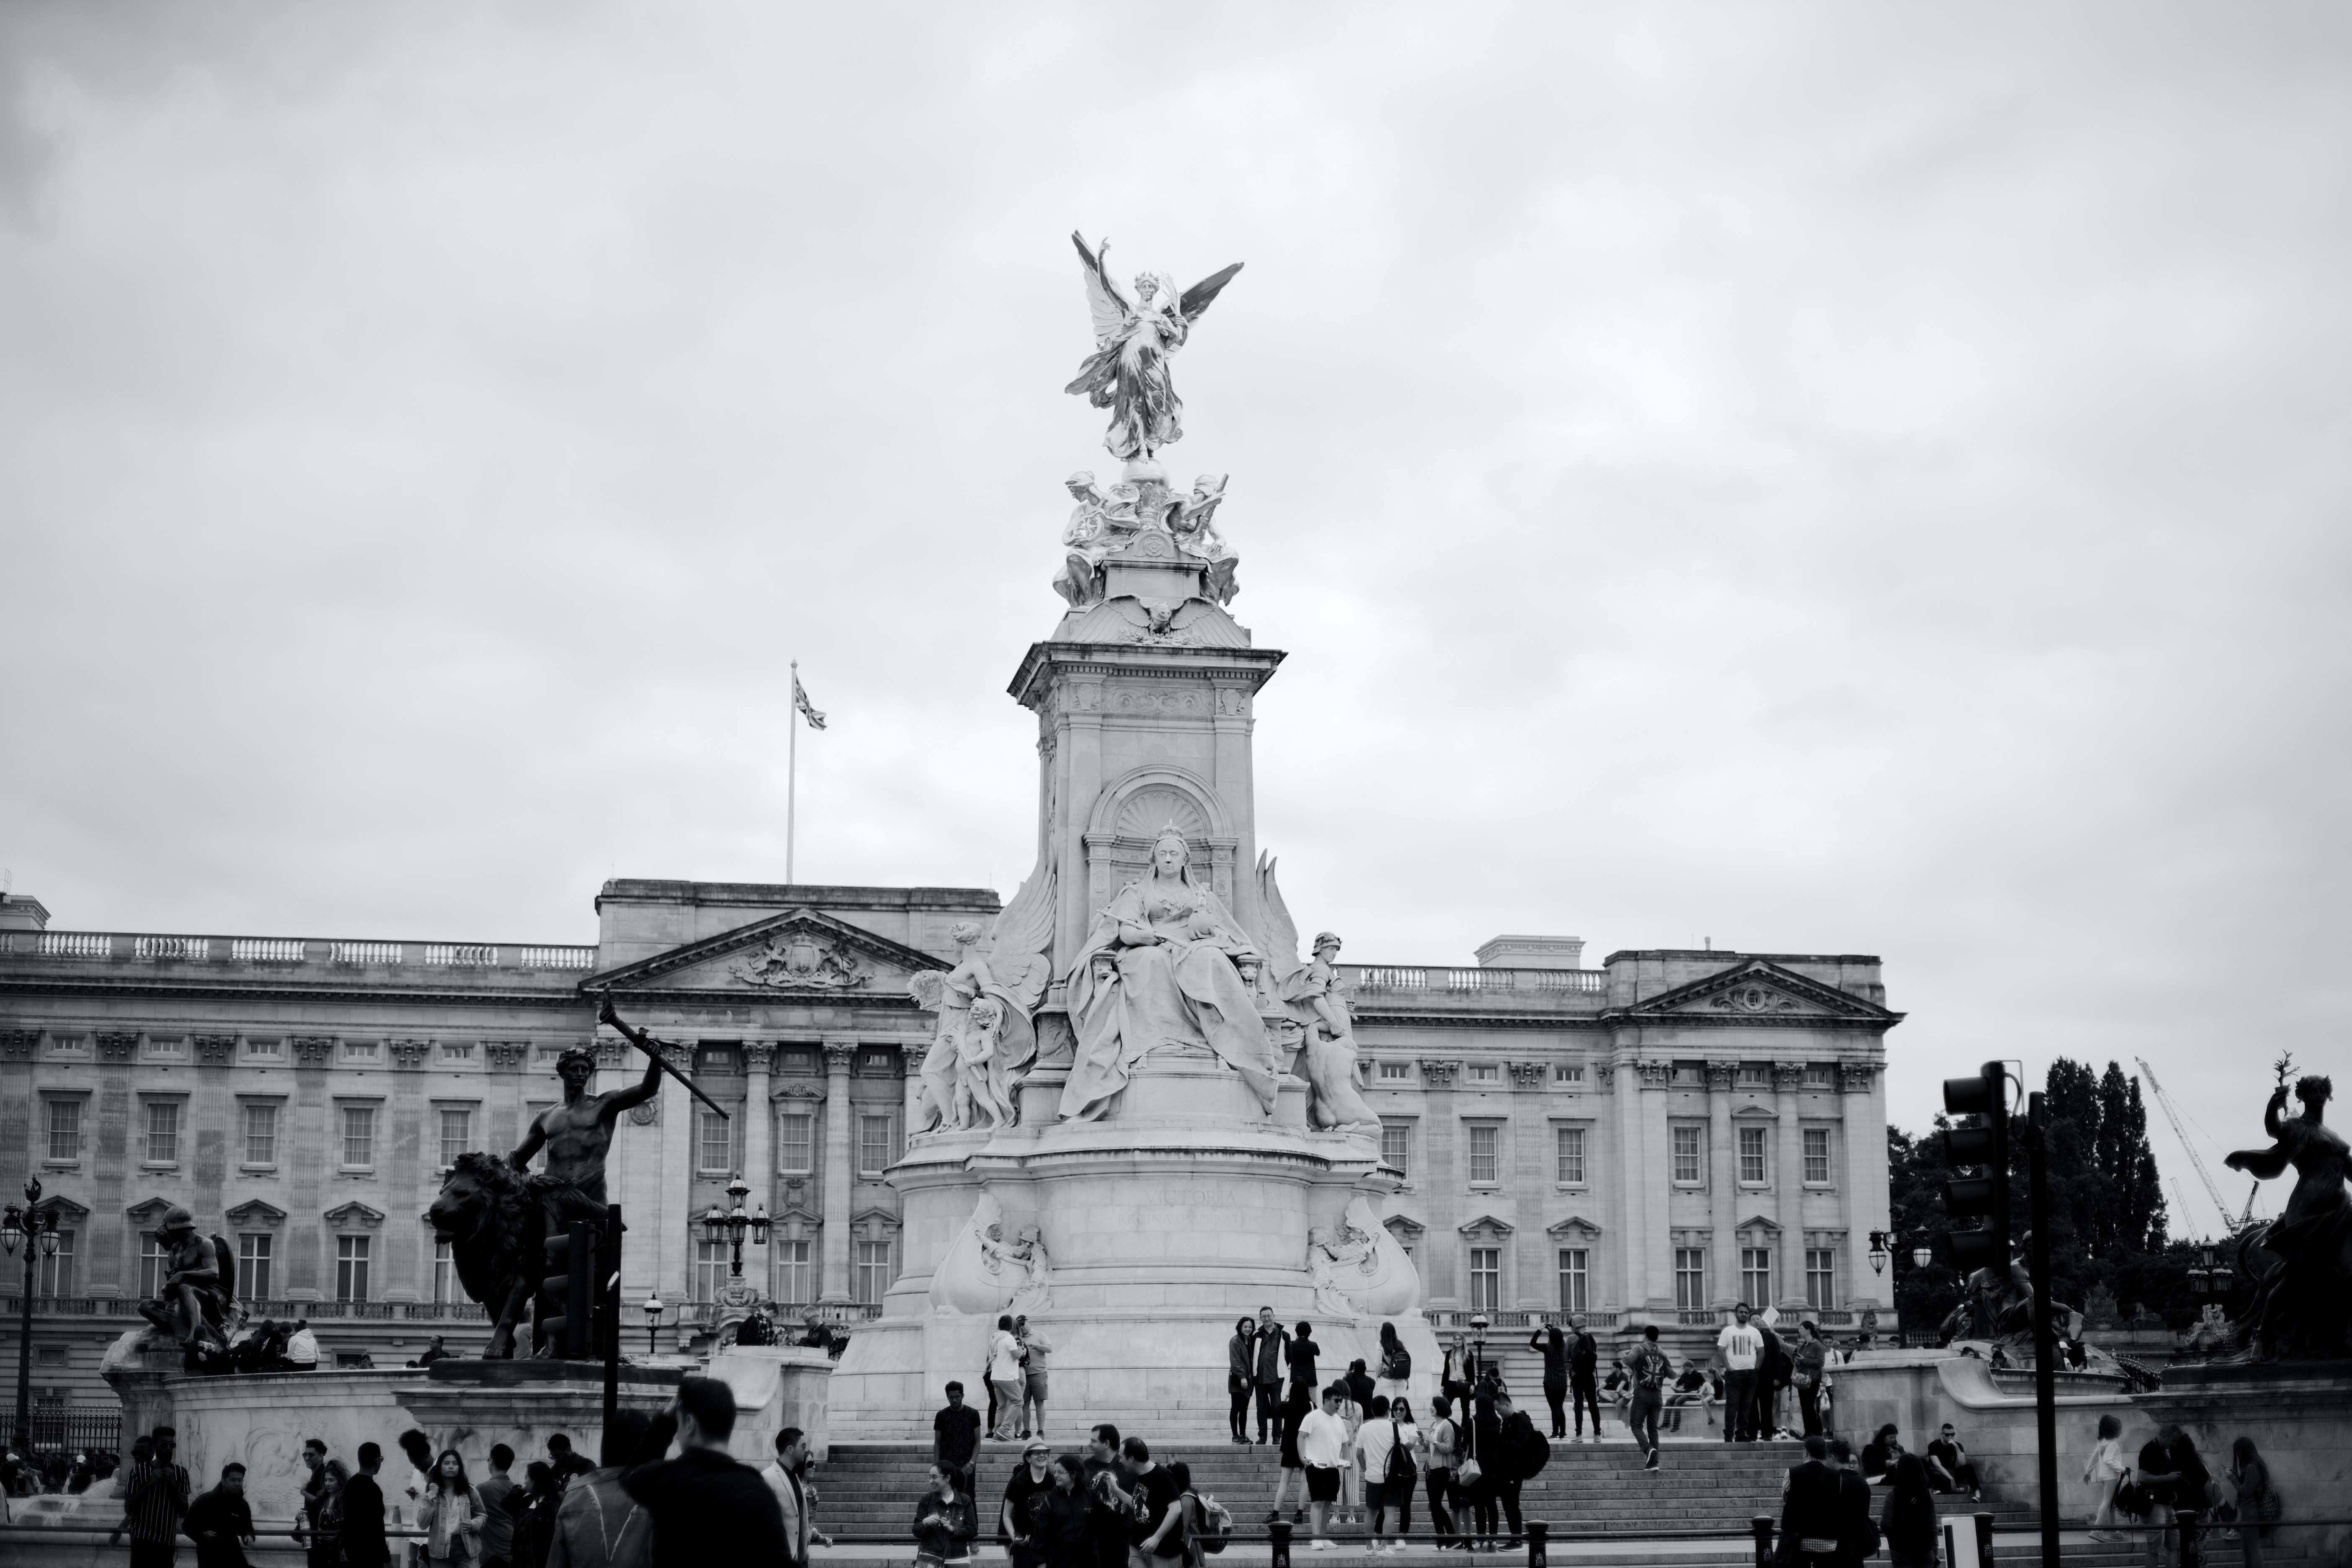 Pictured - A black and white photo of Buckingham Palace | Source: Pexels